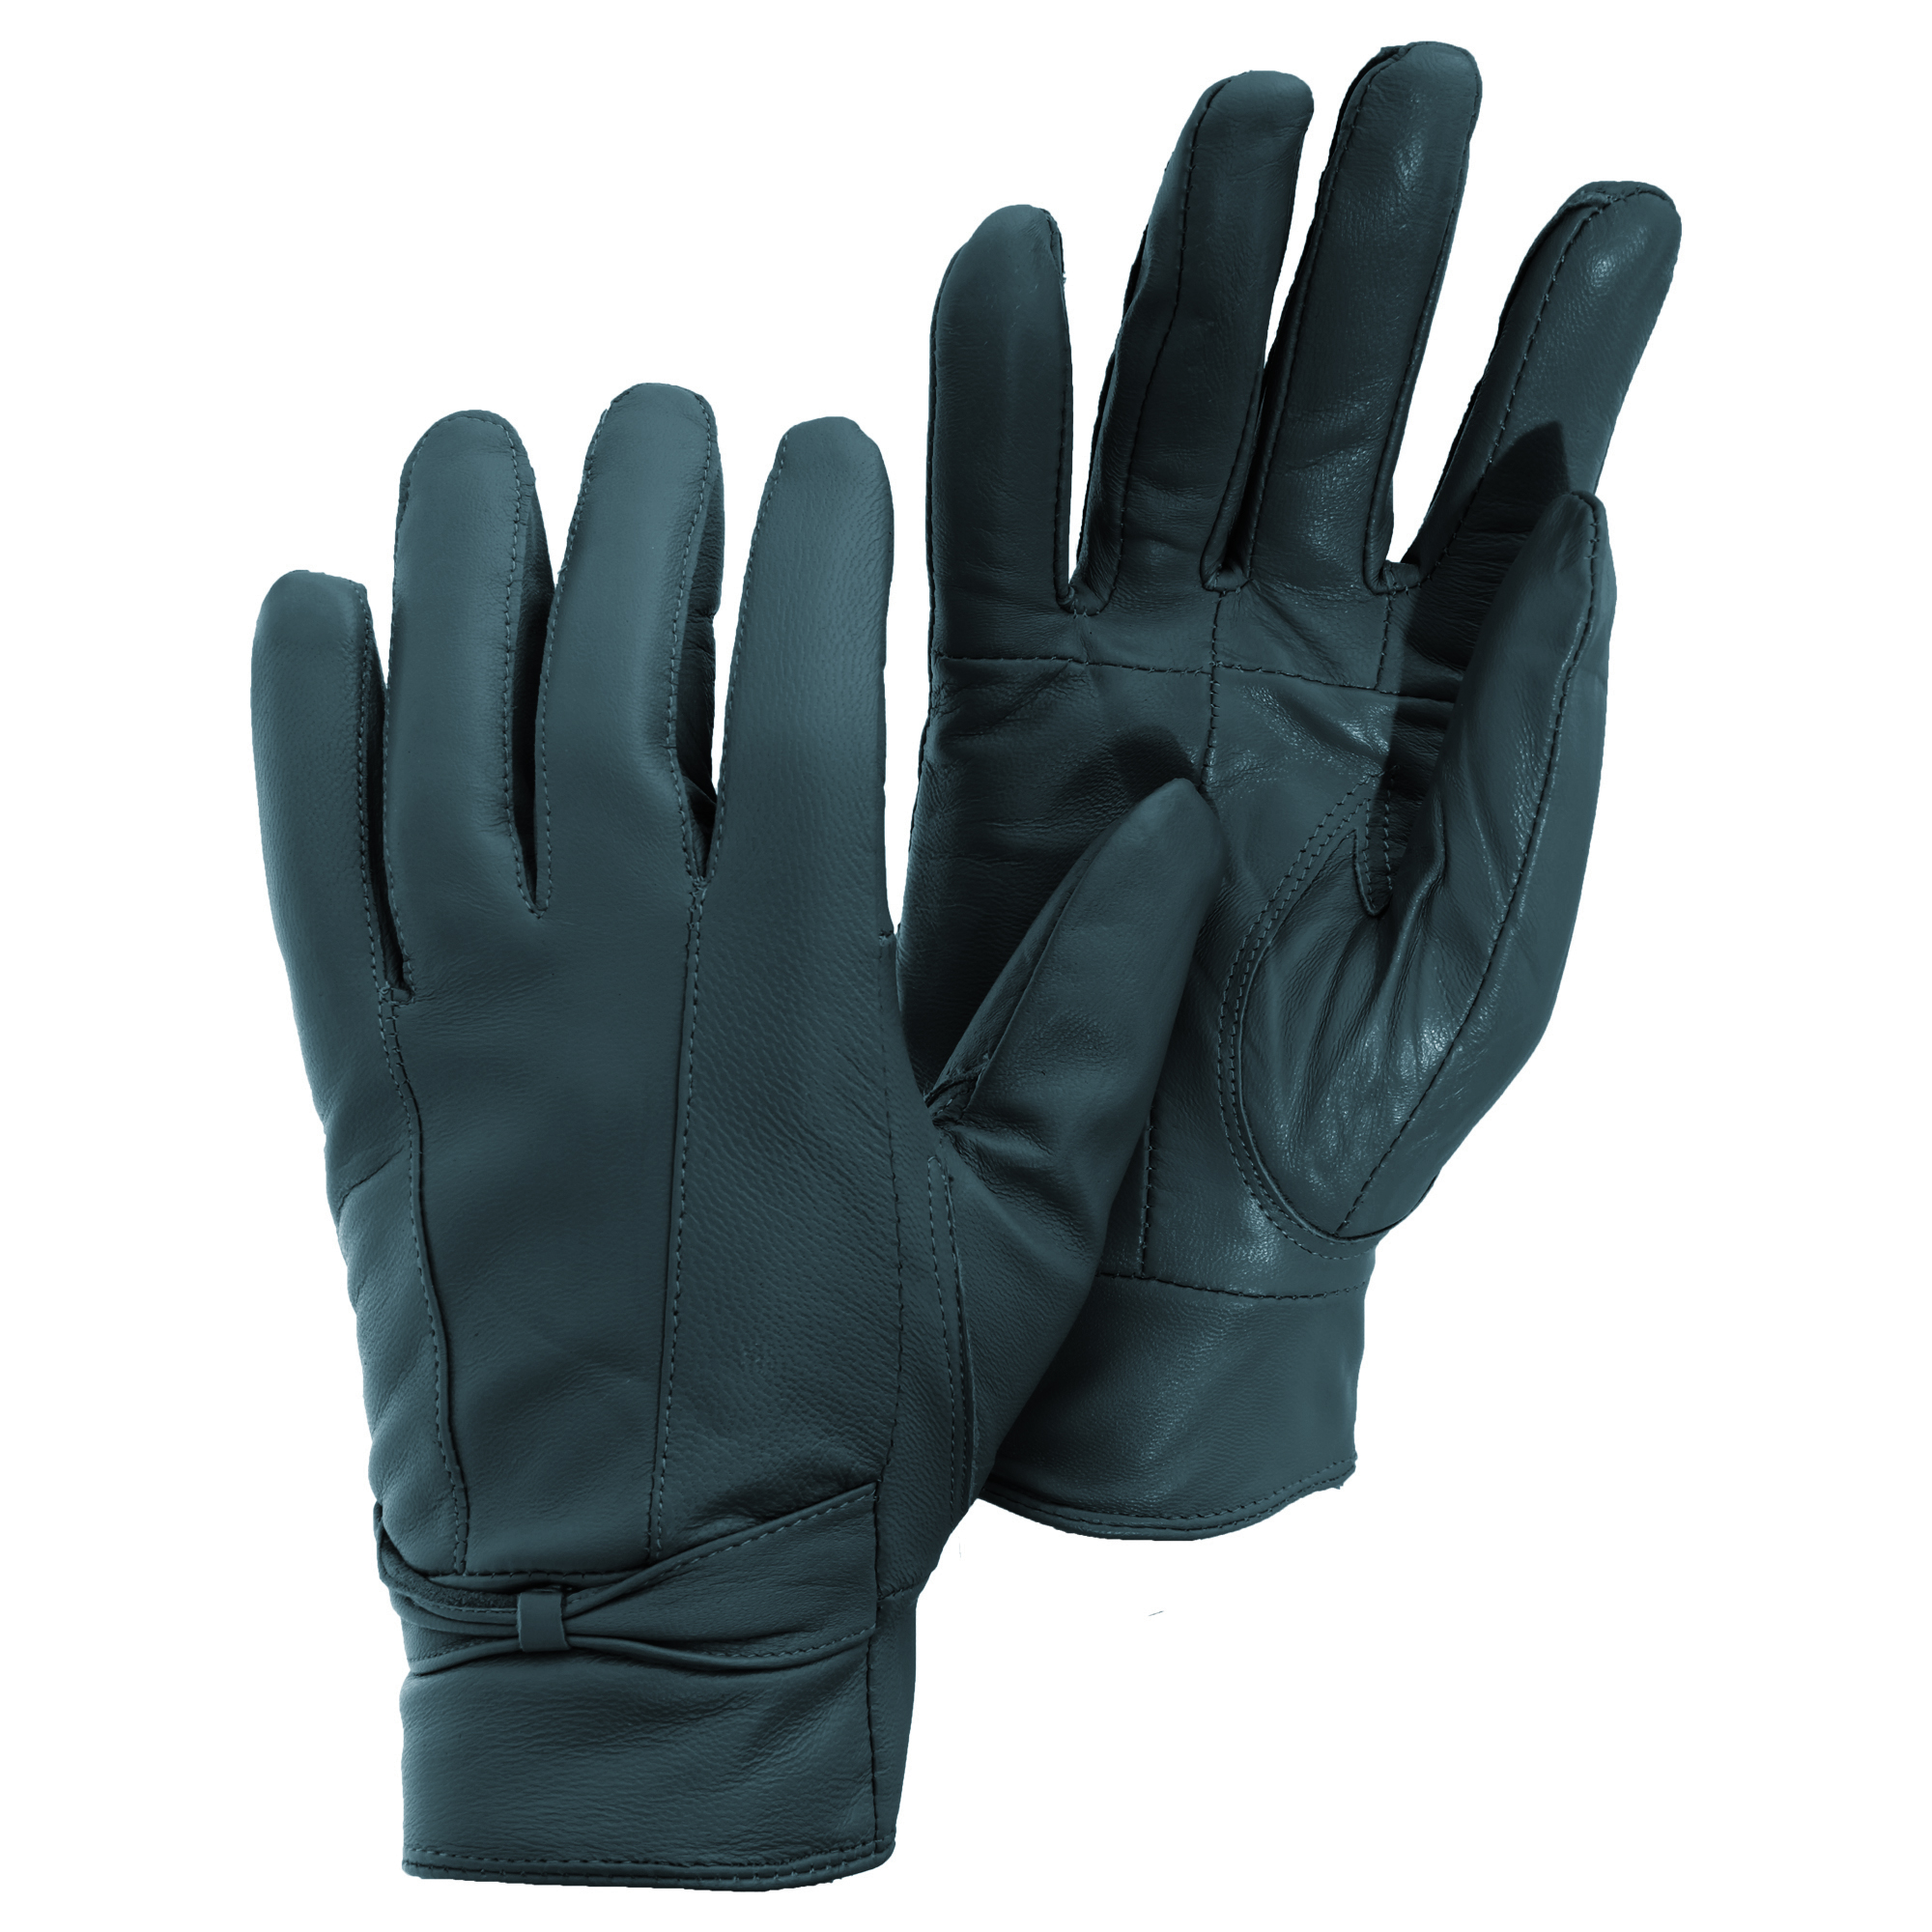 Womens leather gloves teal - Womens Ladies Plain Leather Gloves